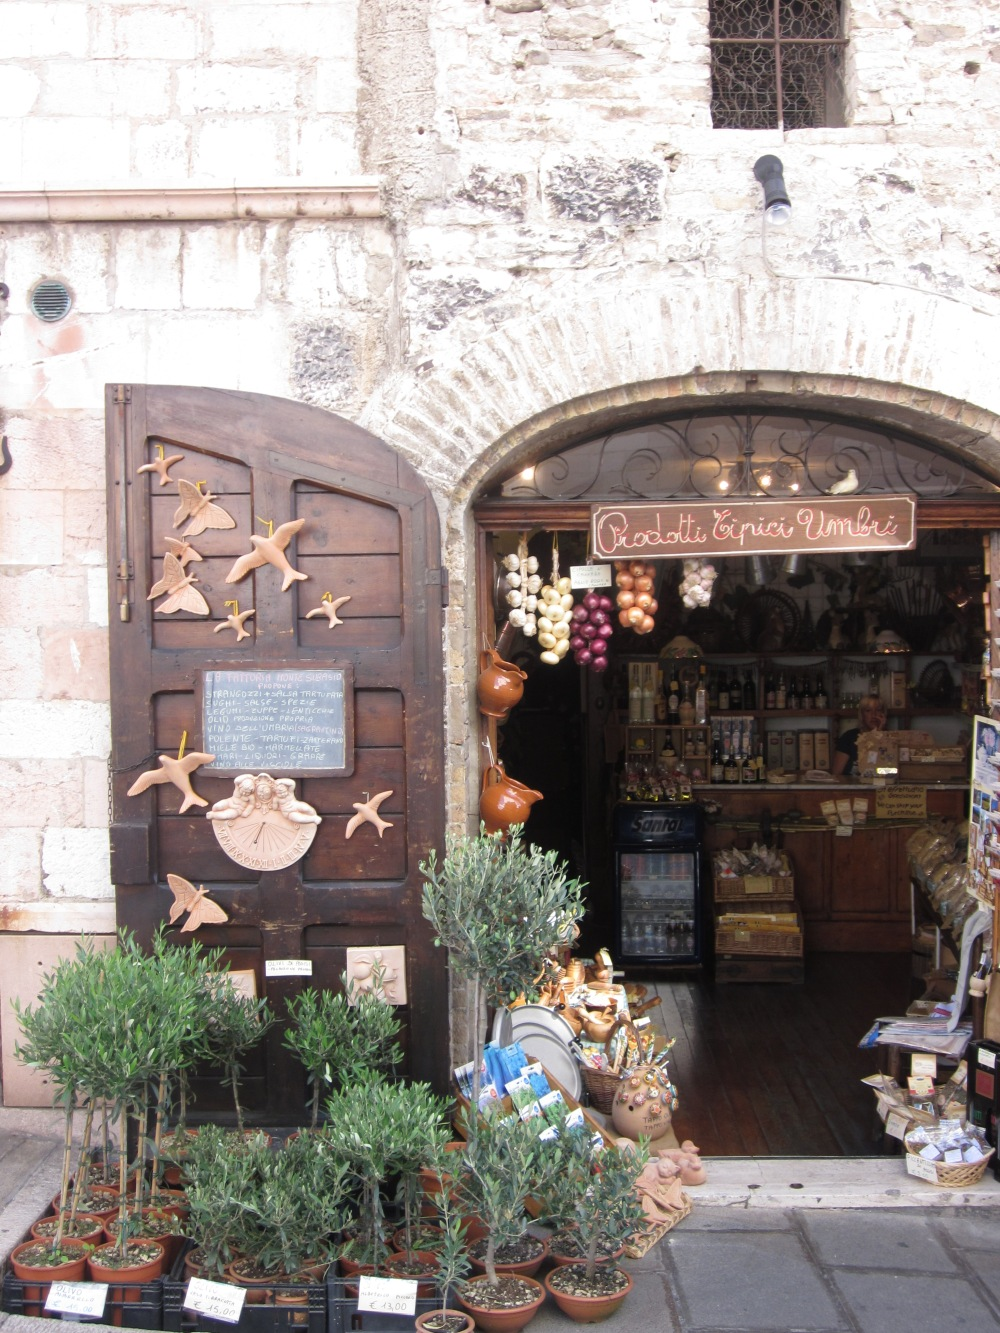 Bottega artigianale in Assisi --- Copyright Francesca Mignosa 2013